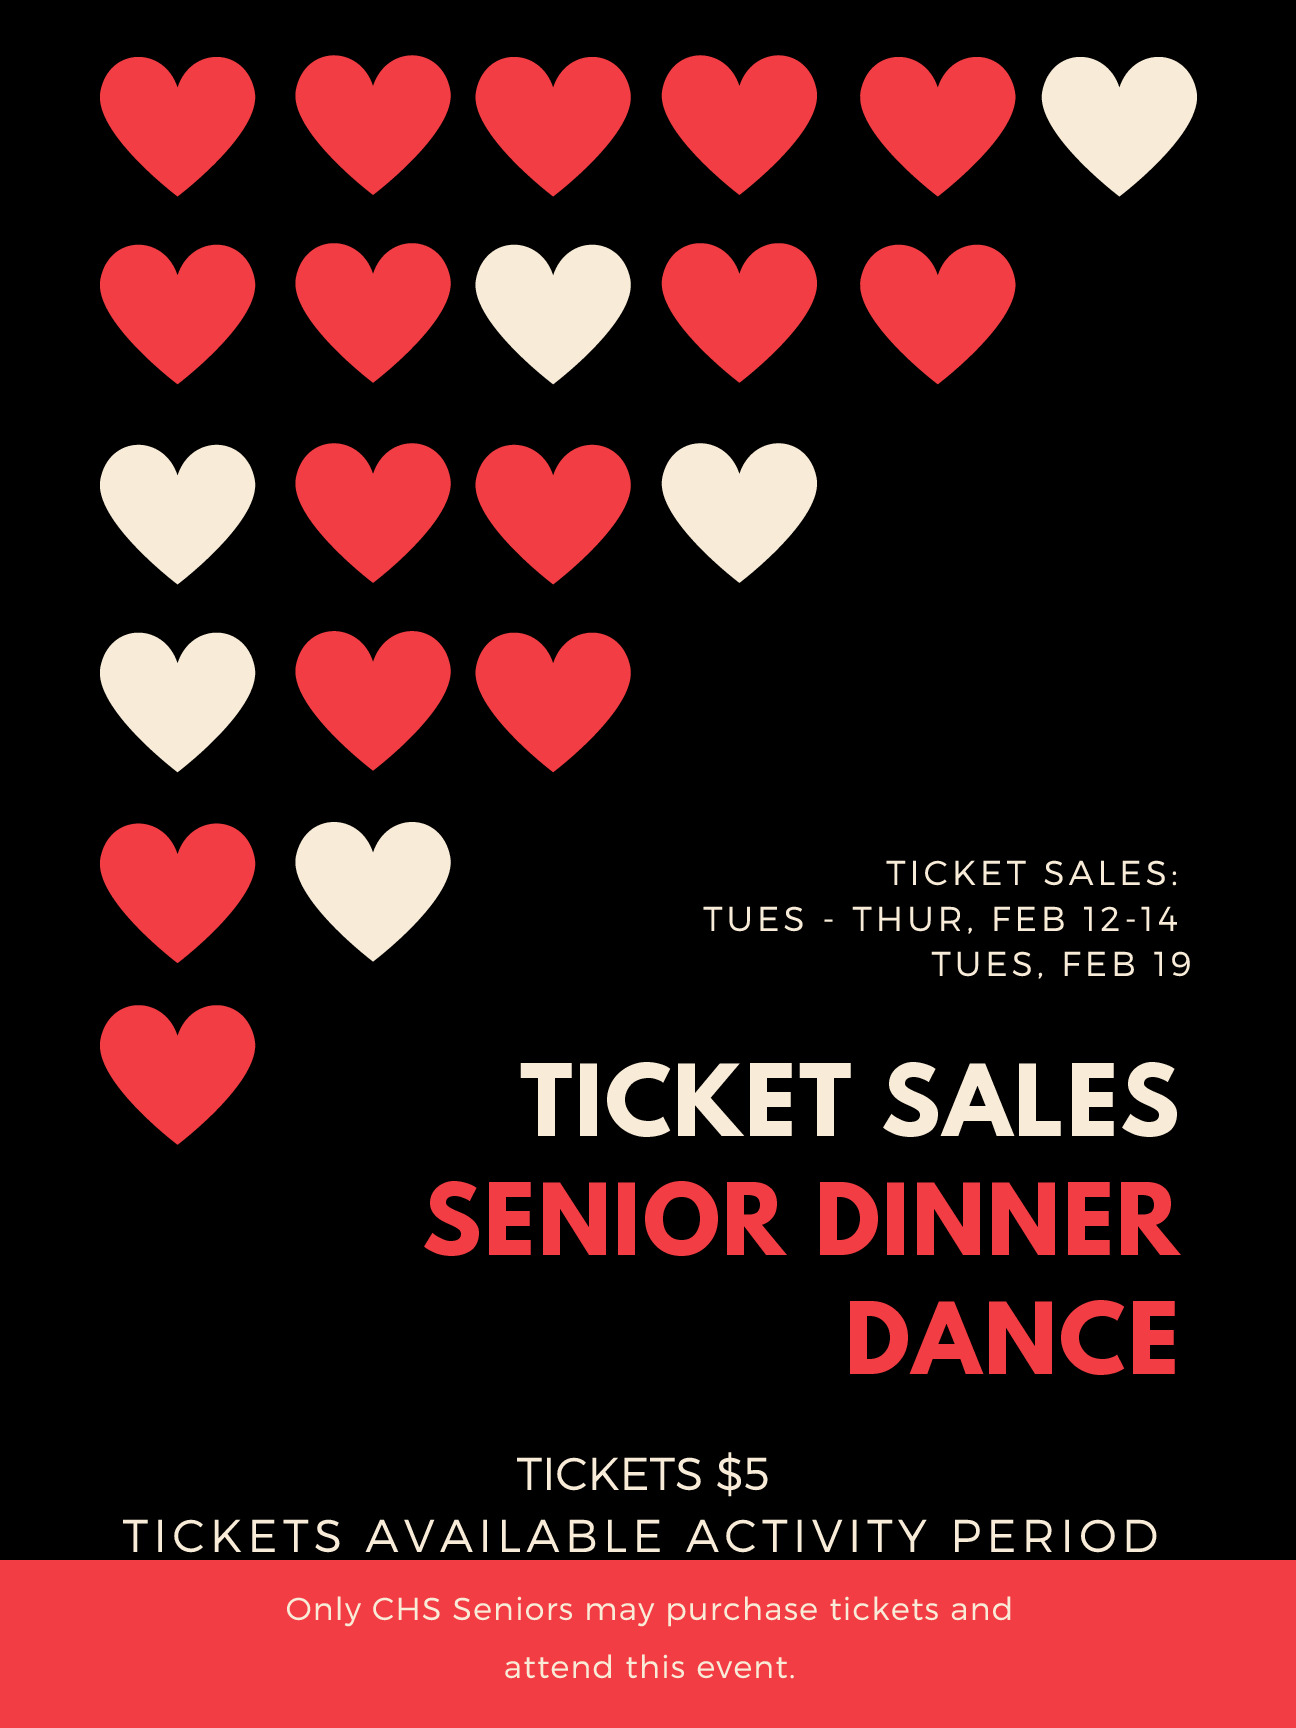 CHS Senior Dinner Dance Ticket SalesTickets are 5 eachTickets available during activity period 212 214 and 219